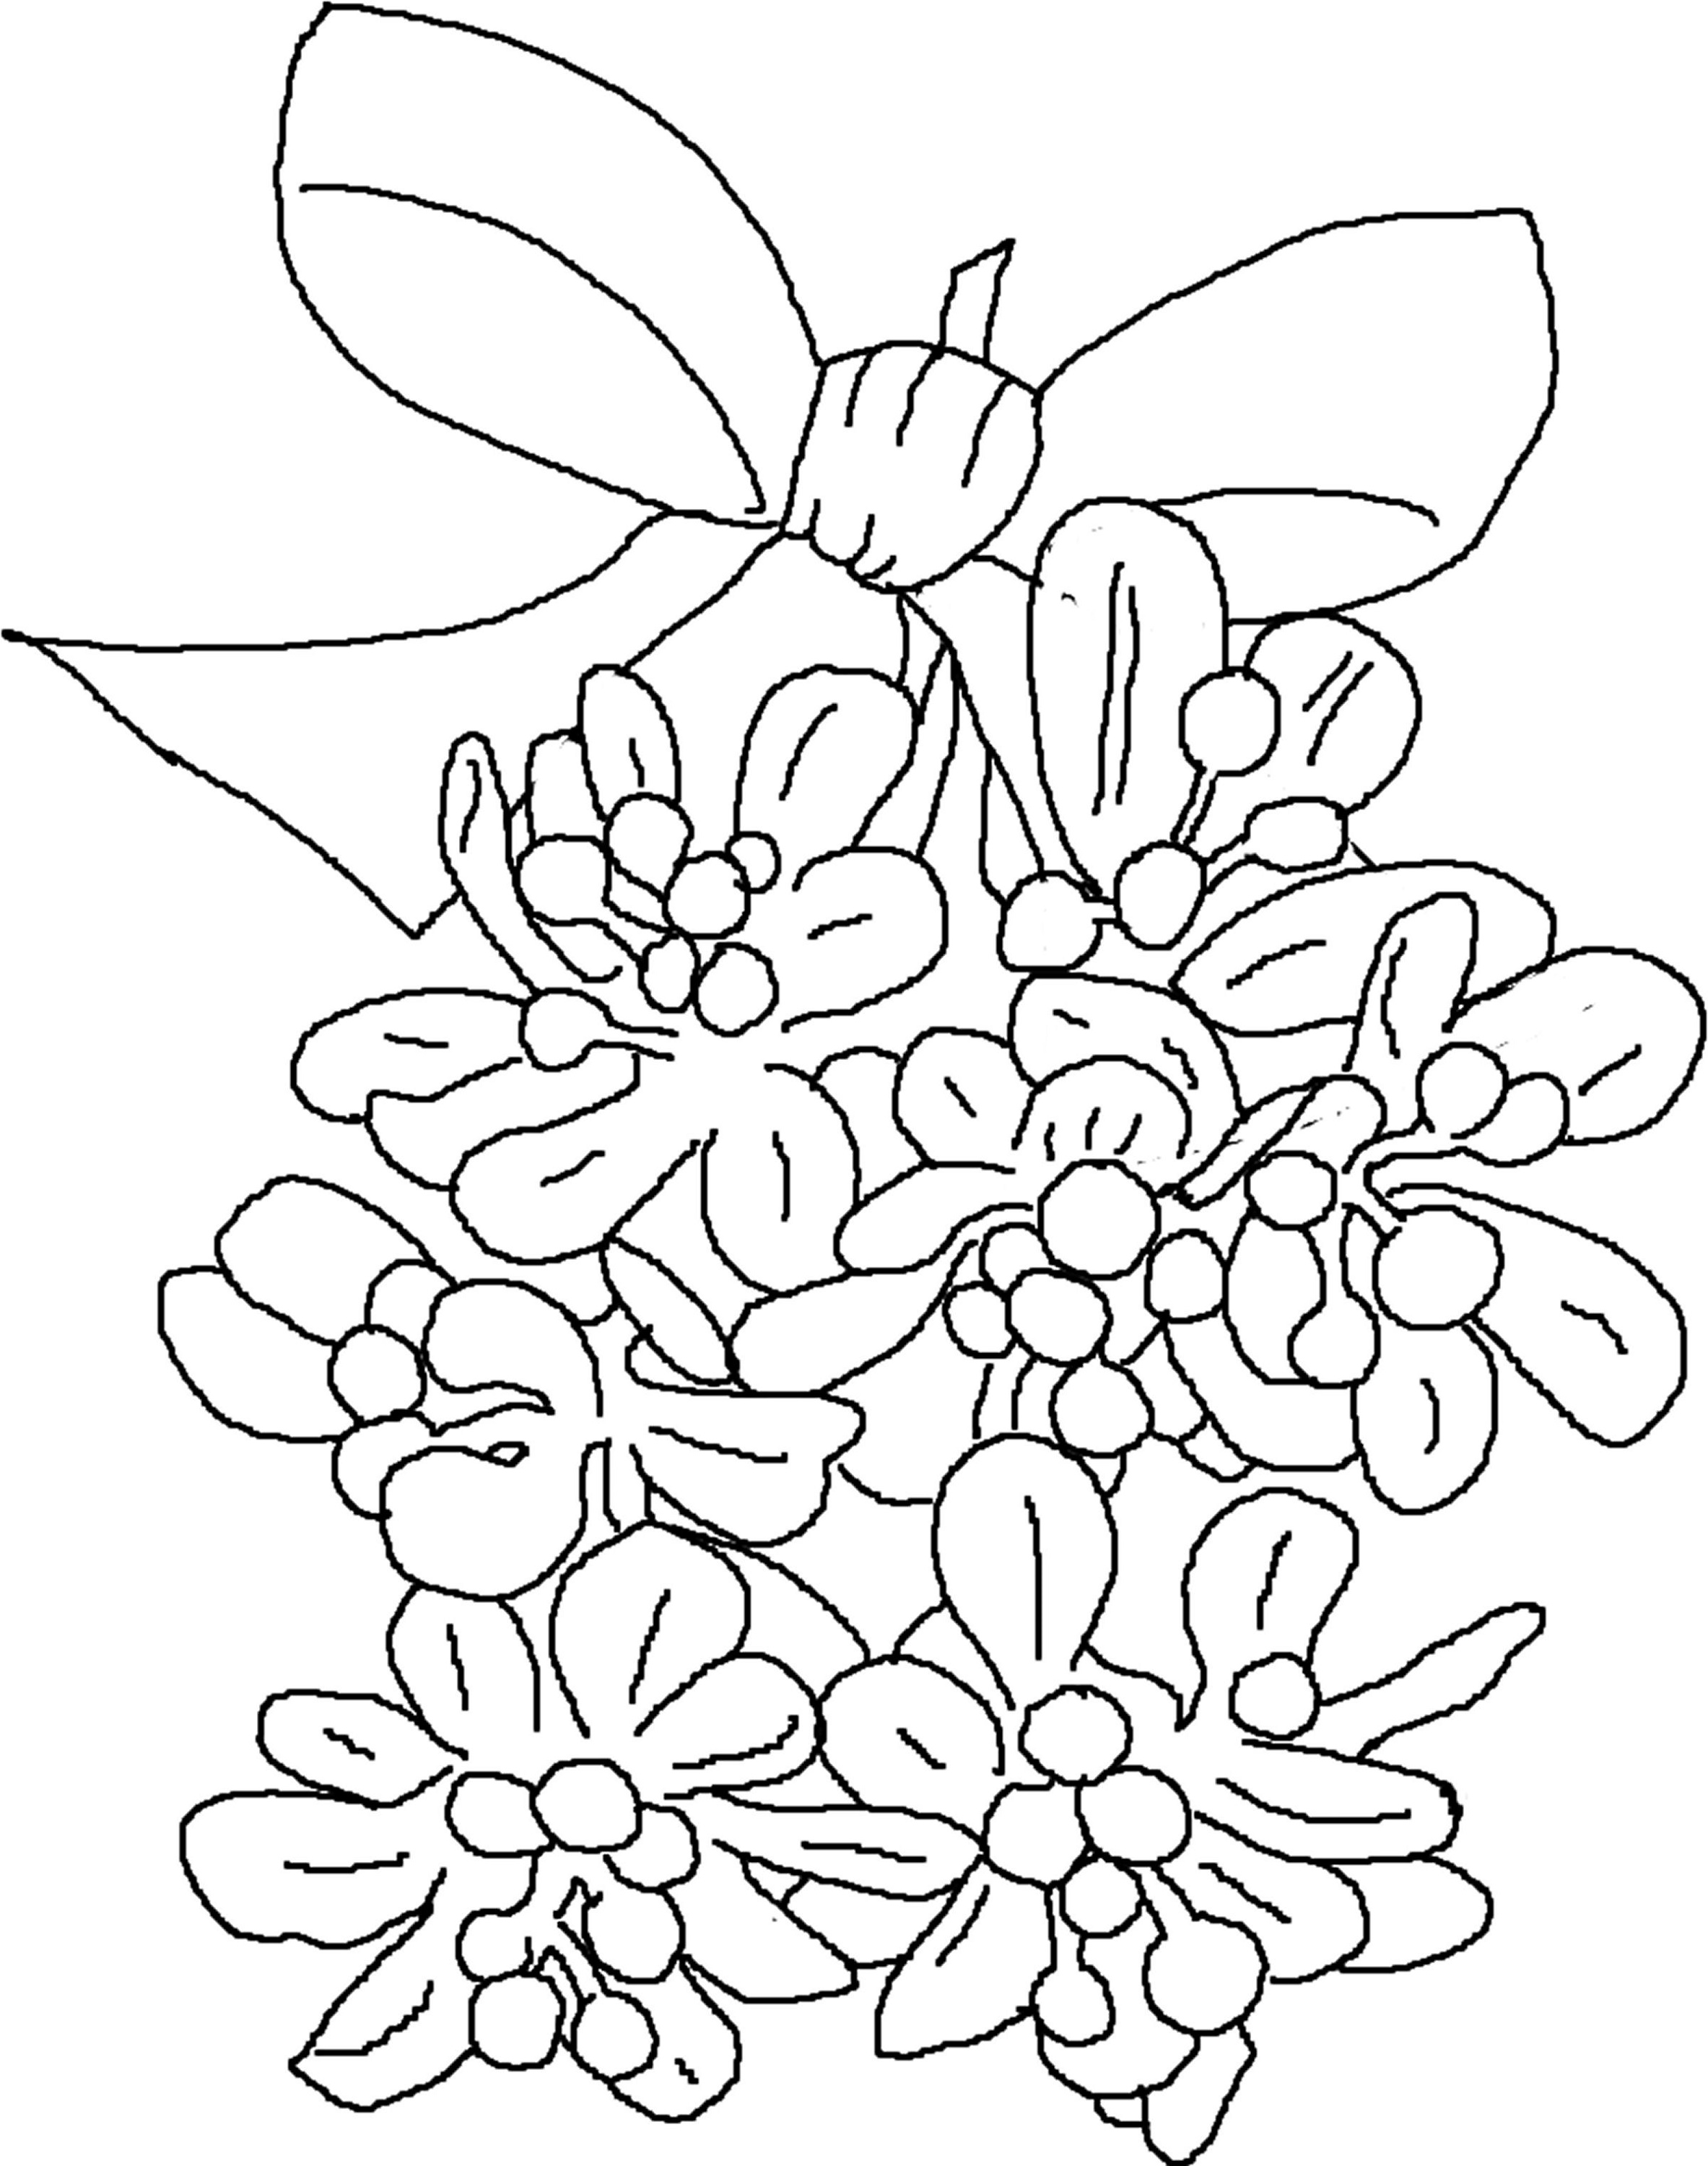 Mistletoe Coloring Pages Christmas